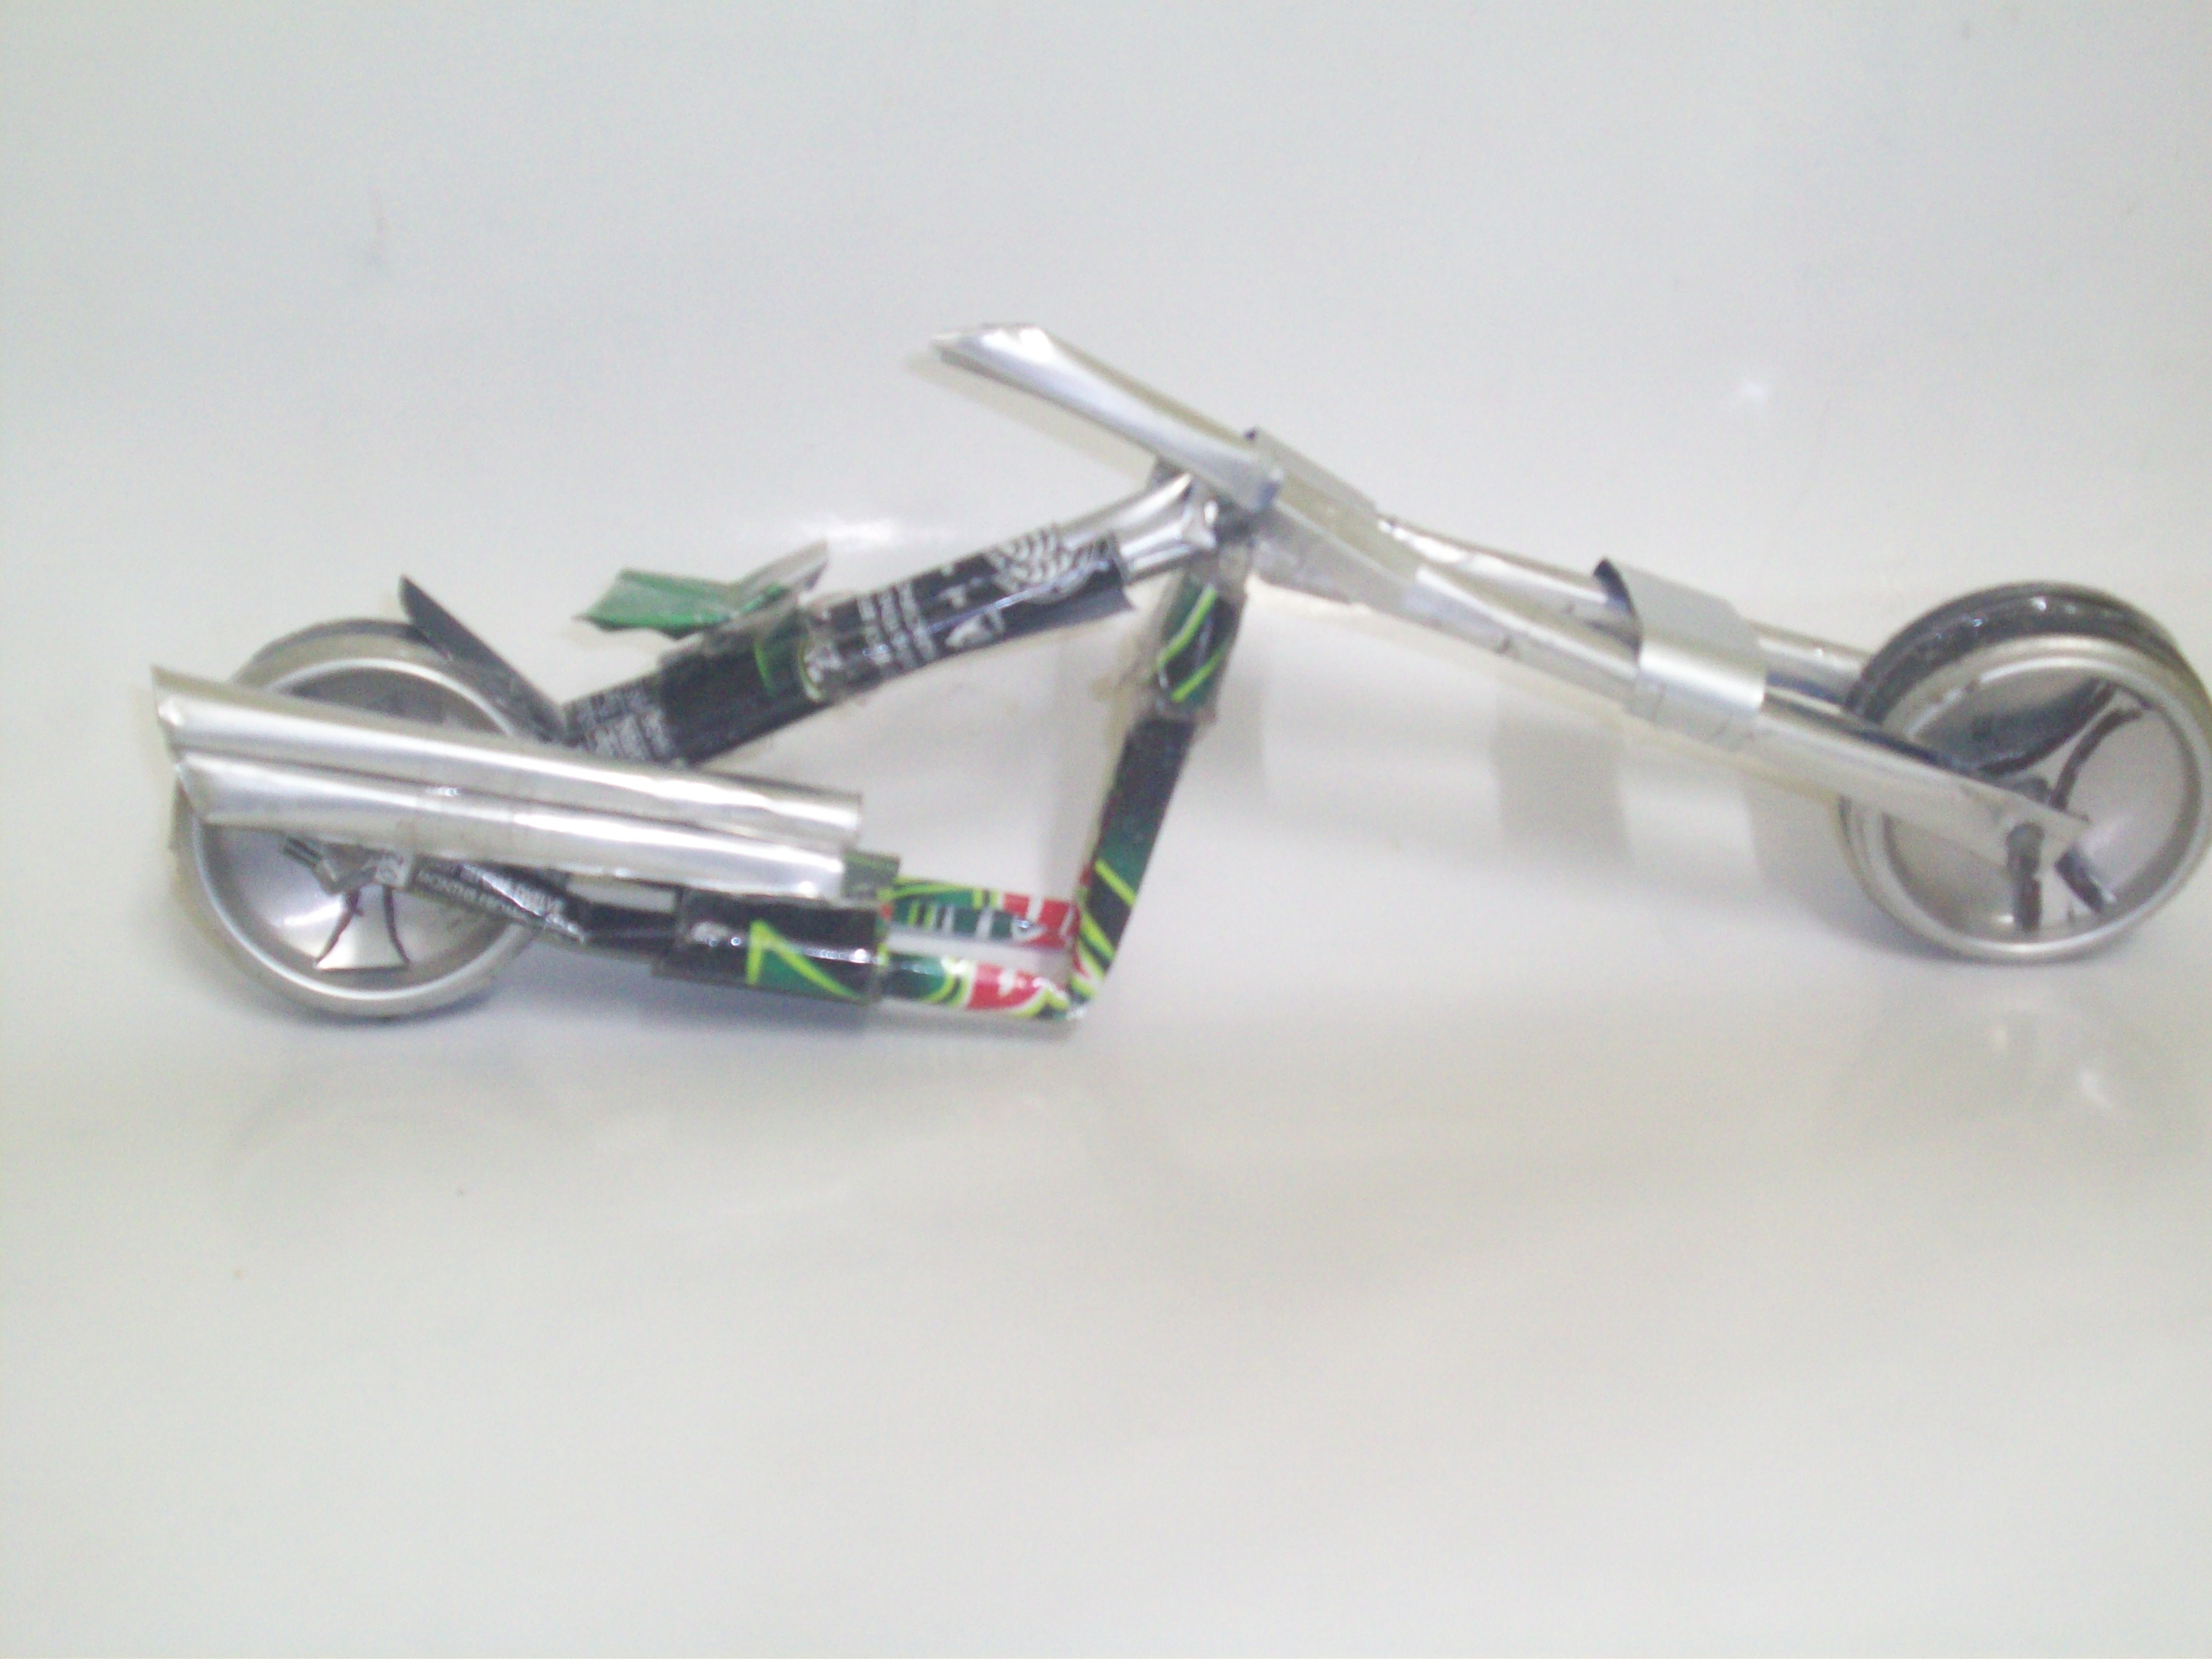 Make a custom Chopper from empty cold deink cans.